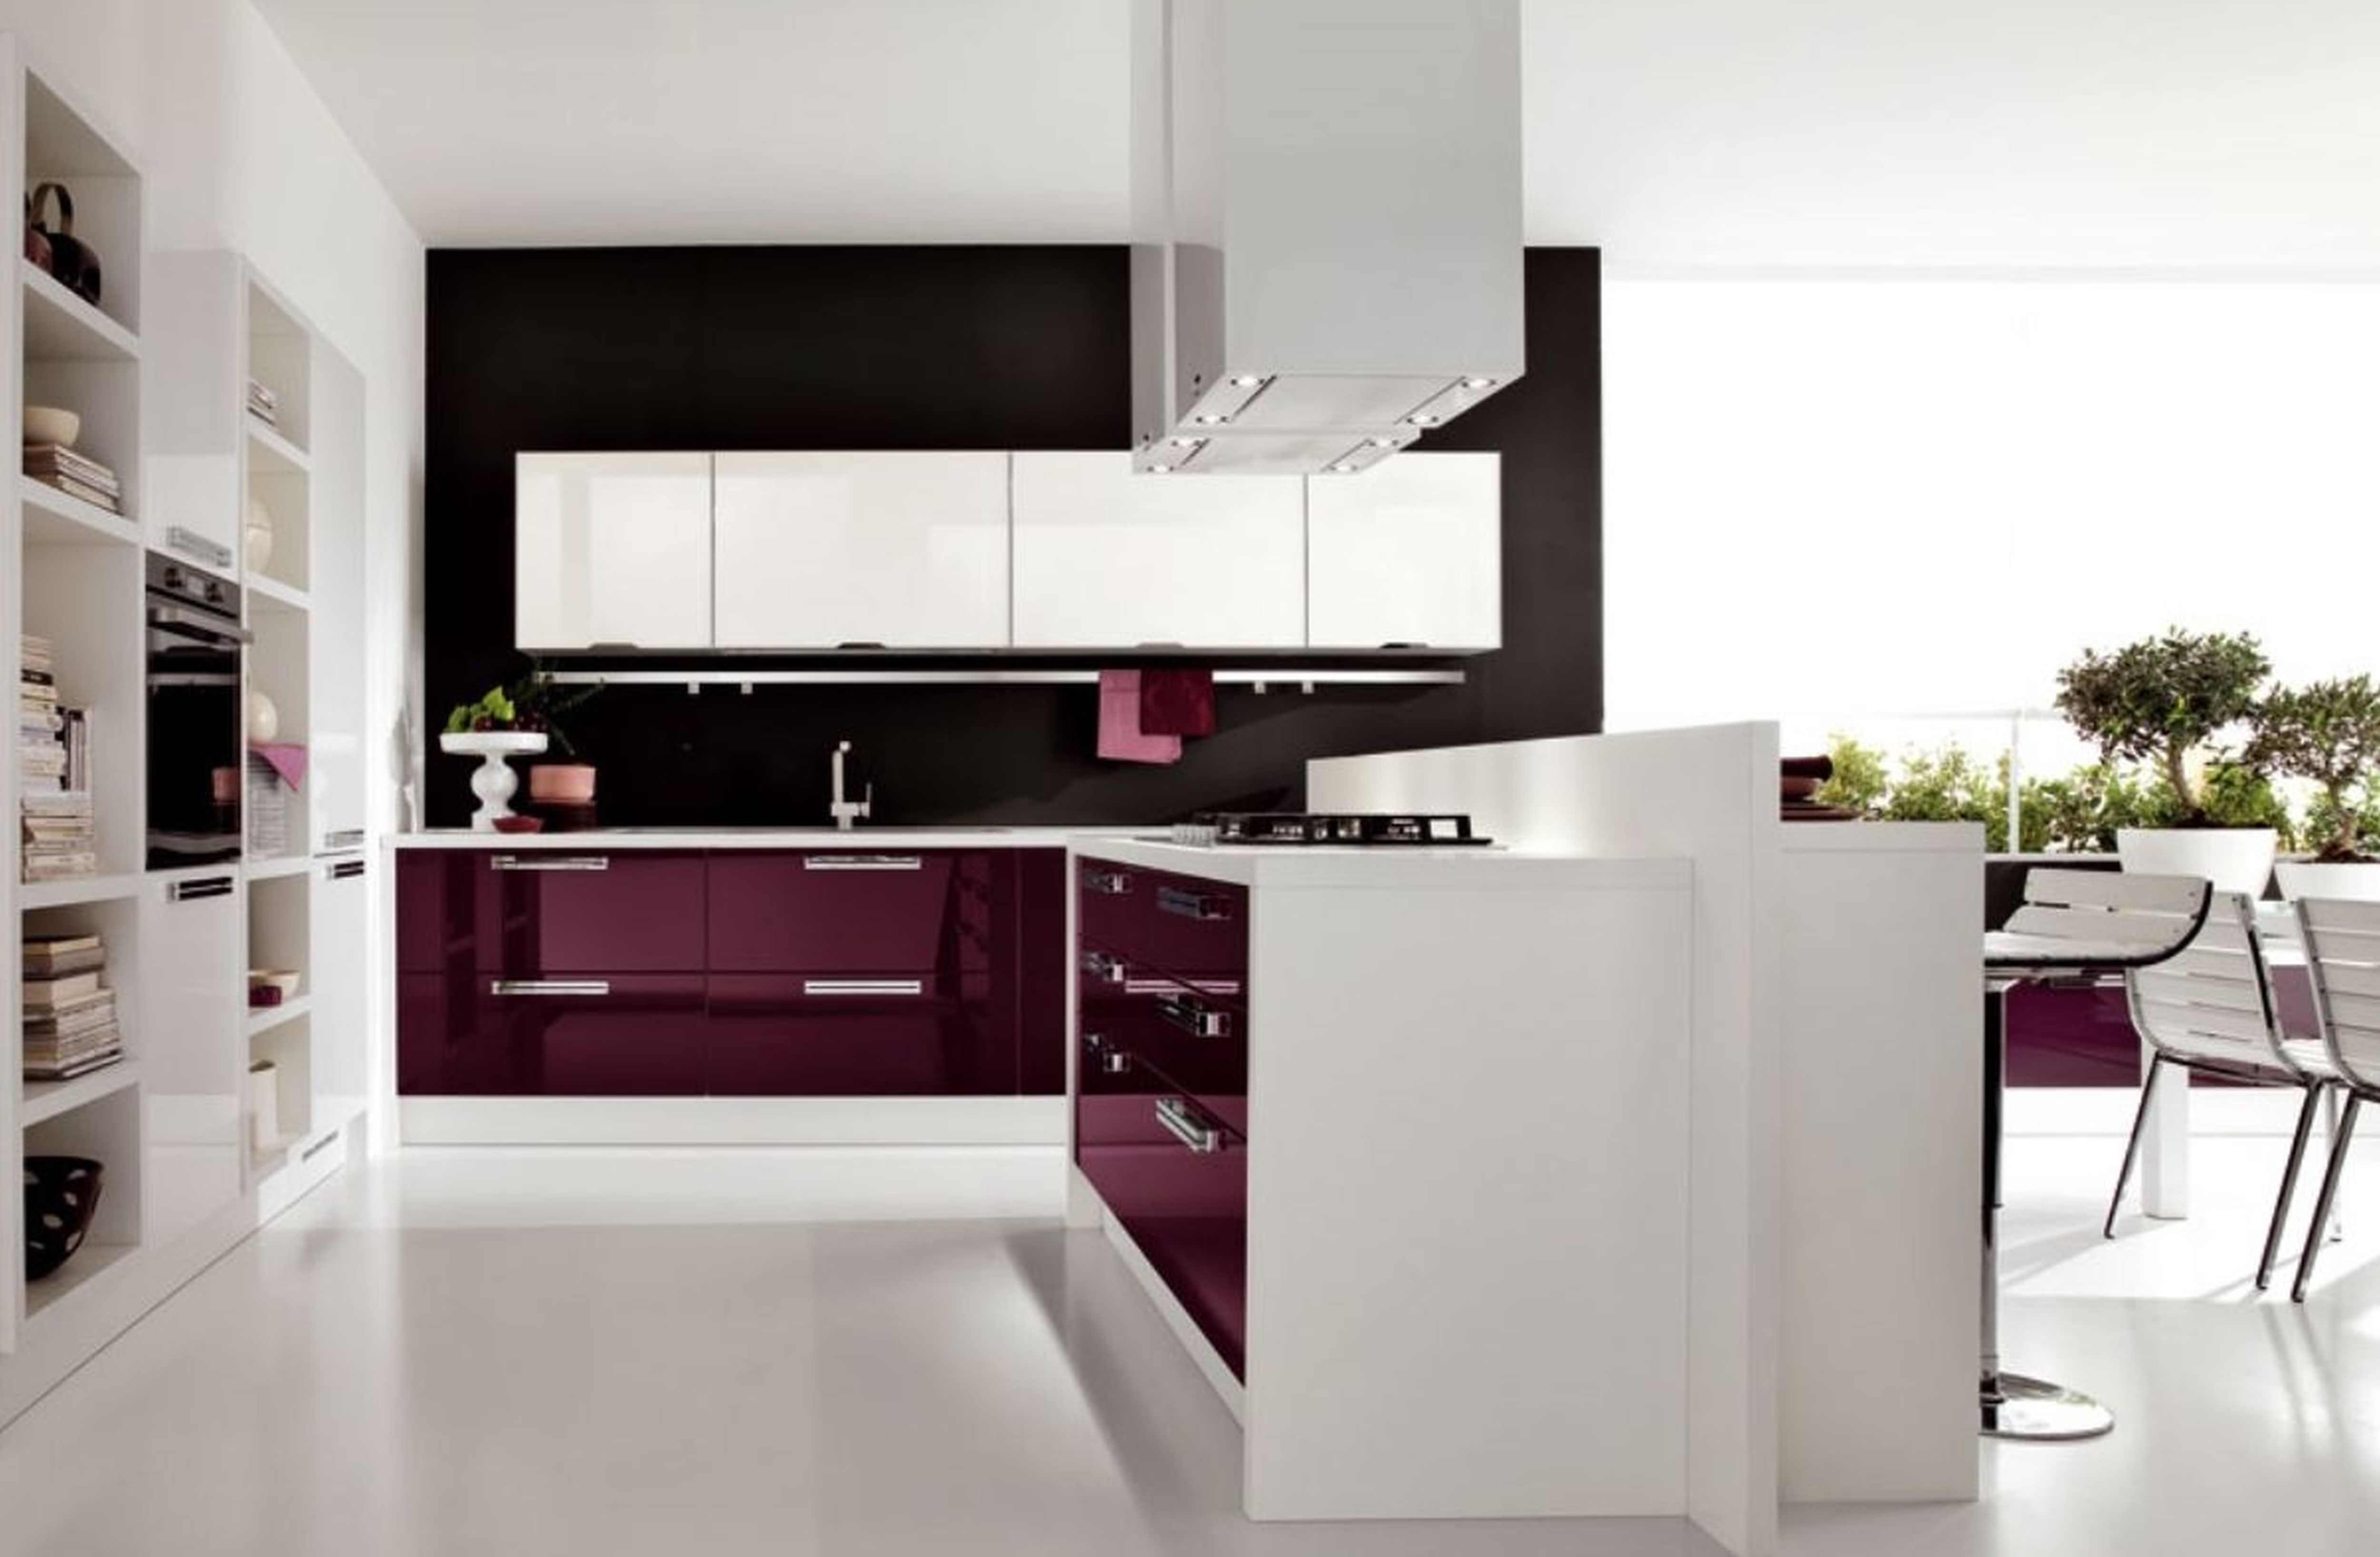 Interior Design Images Good Modern Kitchen Design Gallery Hd Wallpaper And Background Photos